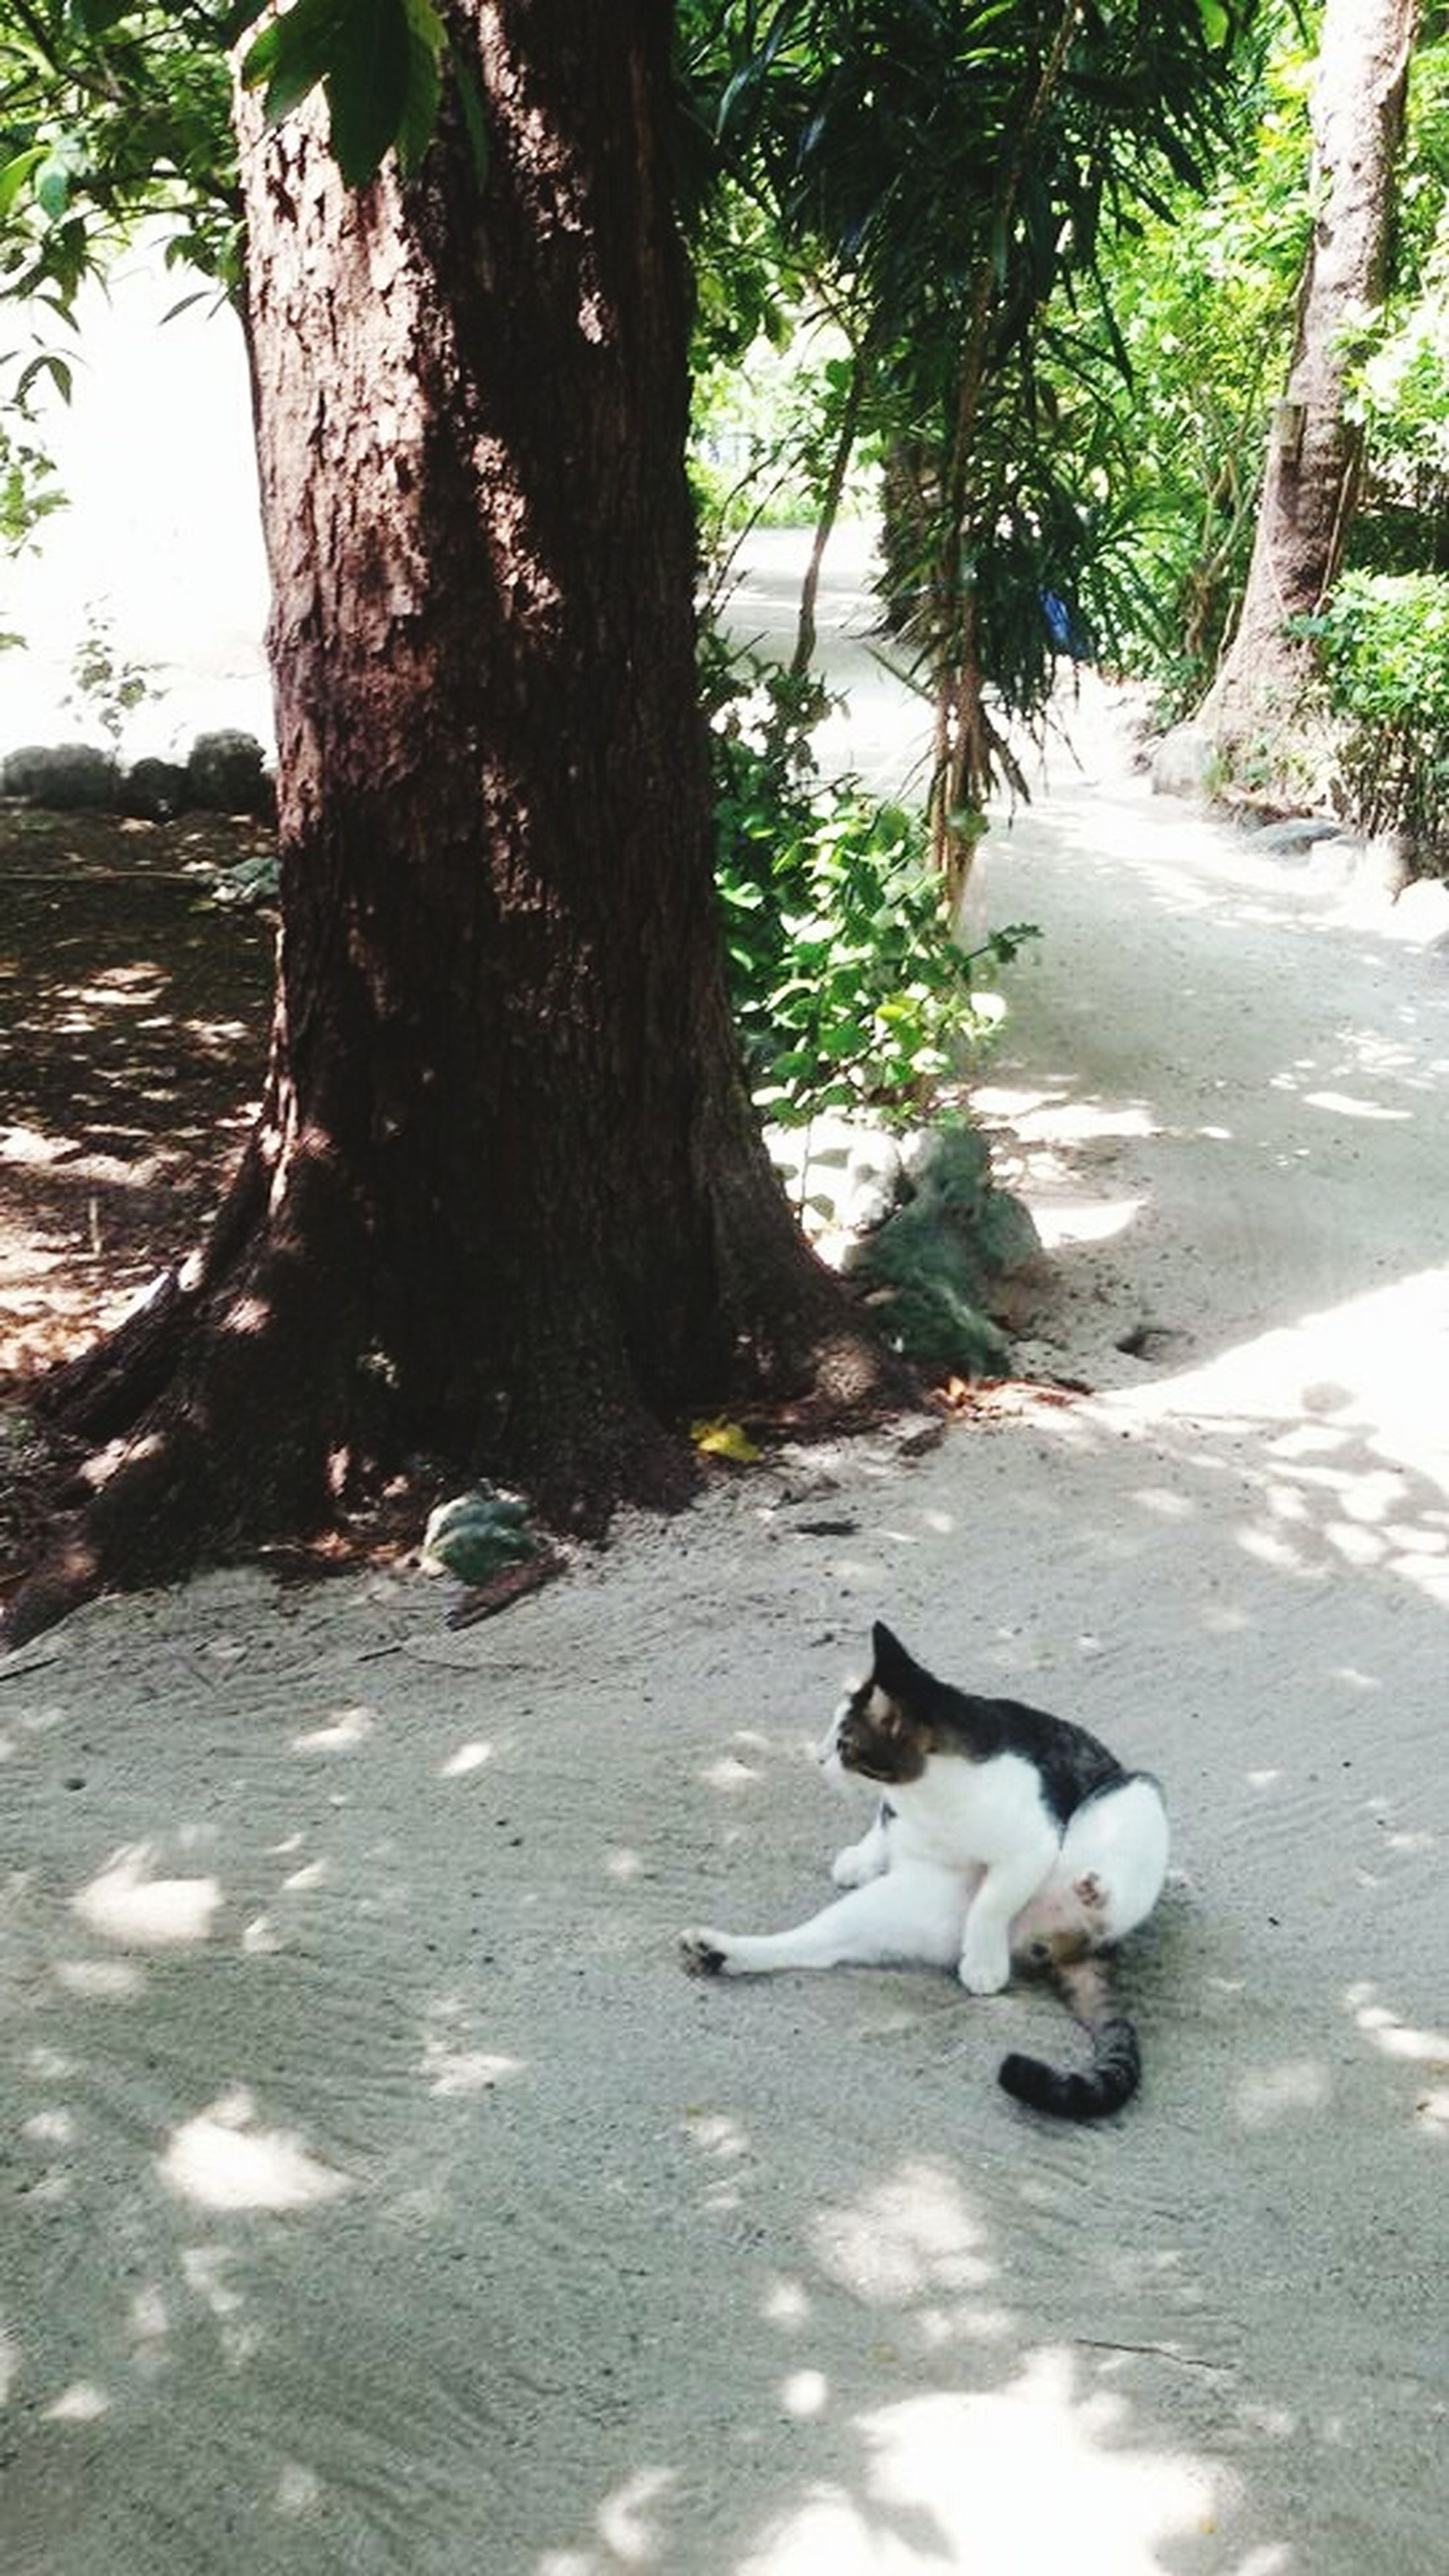 pets, animal themes, mammal, one animal, domestic animals, tree, dog, tree trunk, domestic cat, cat, feline, sunlight, leaf, street, day, outdoors, nature, shadow, relaxation, stray animal